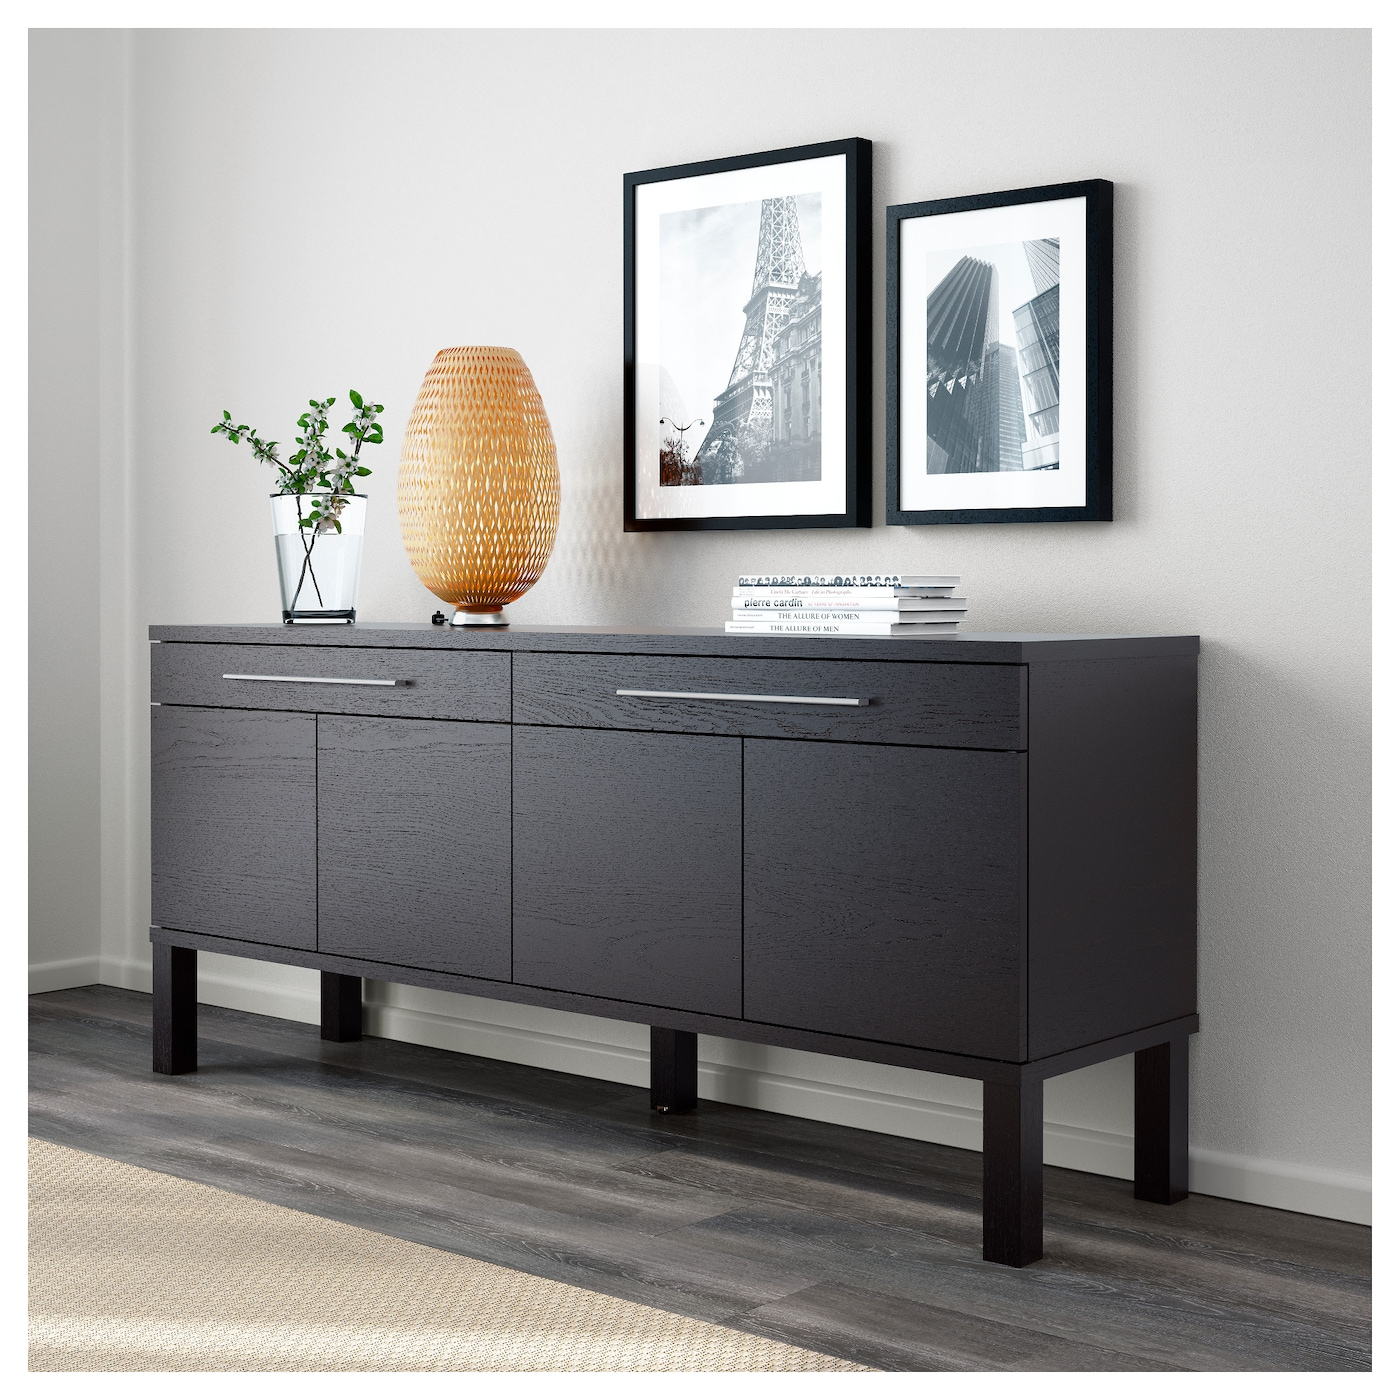 Bjursta Sideboard Brown Black 155x68 Cm Ikea